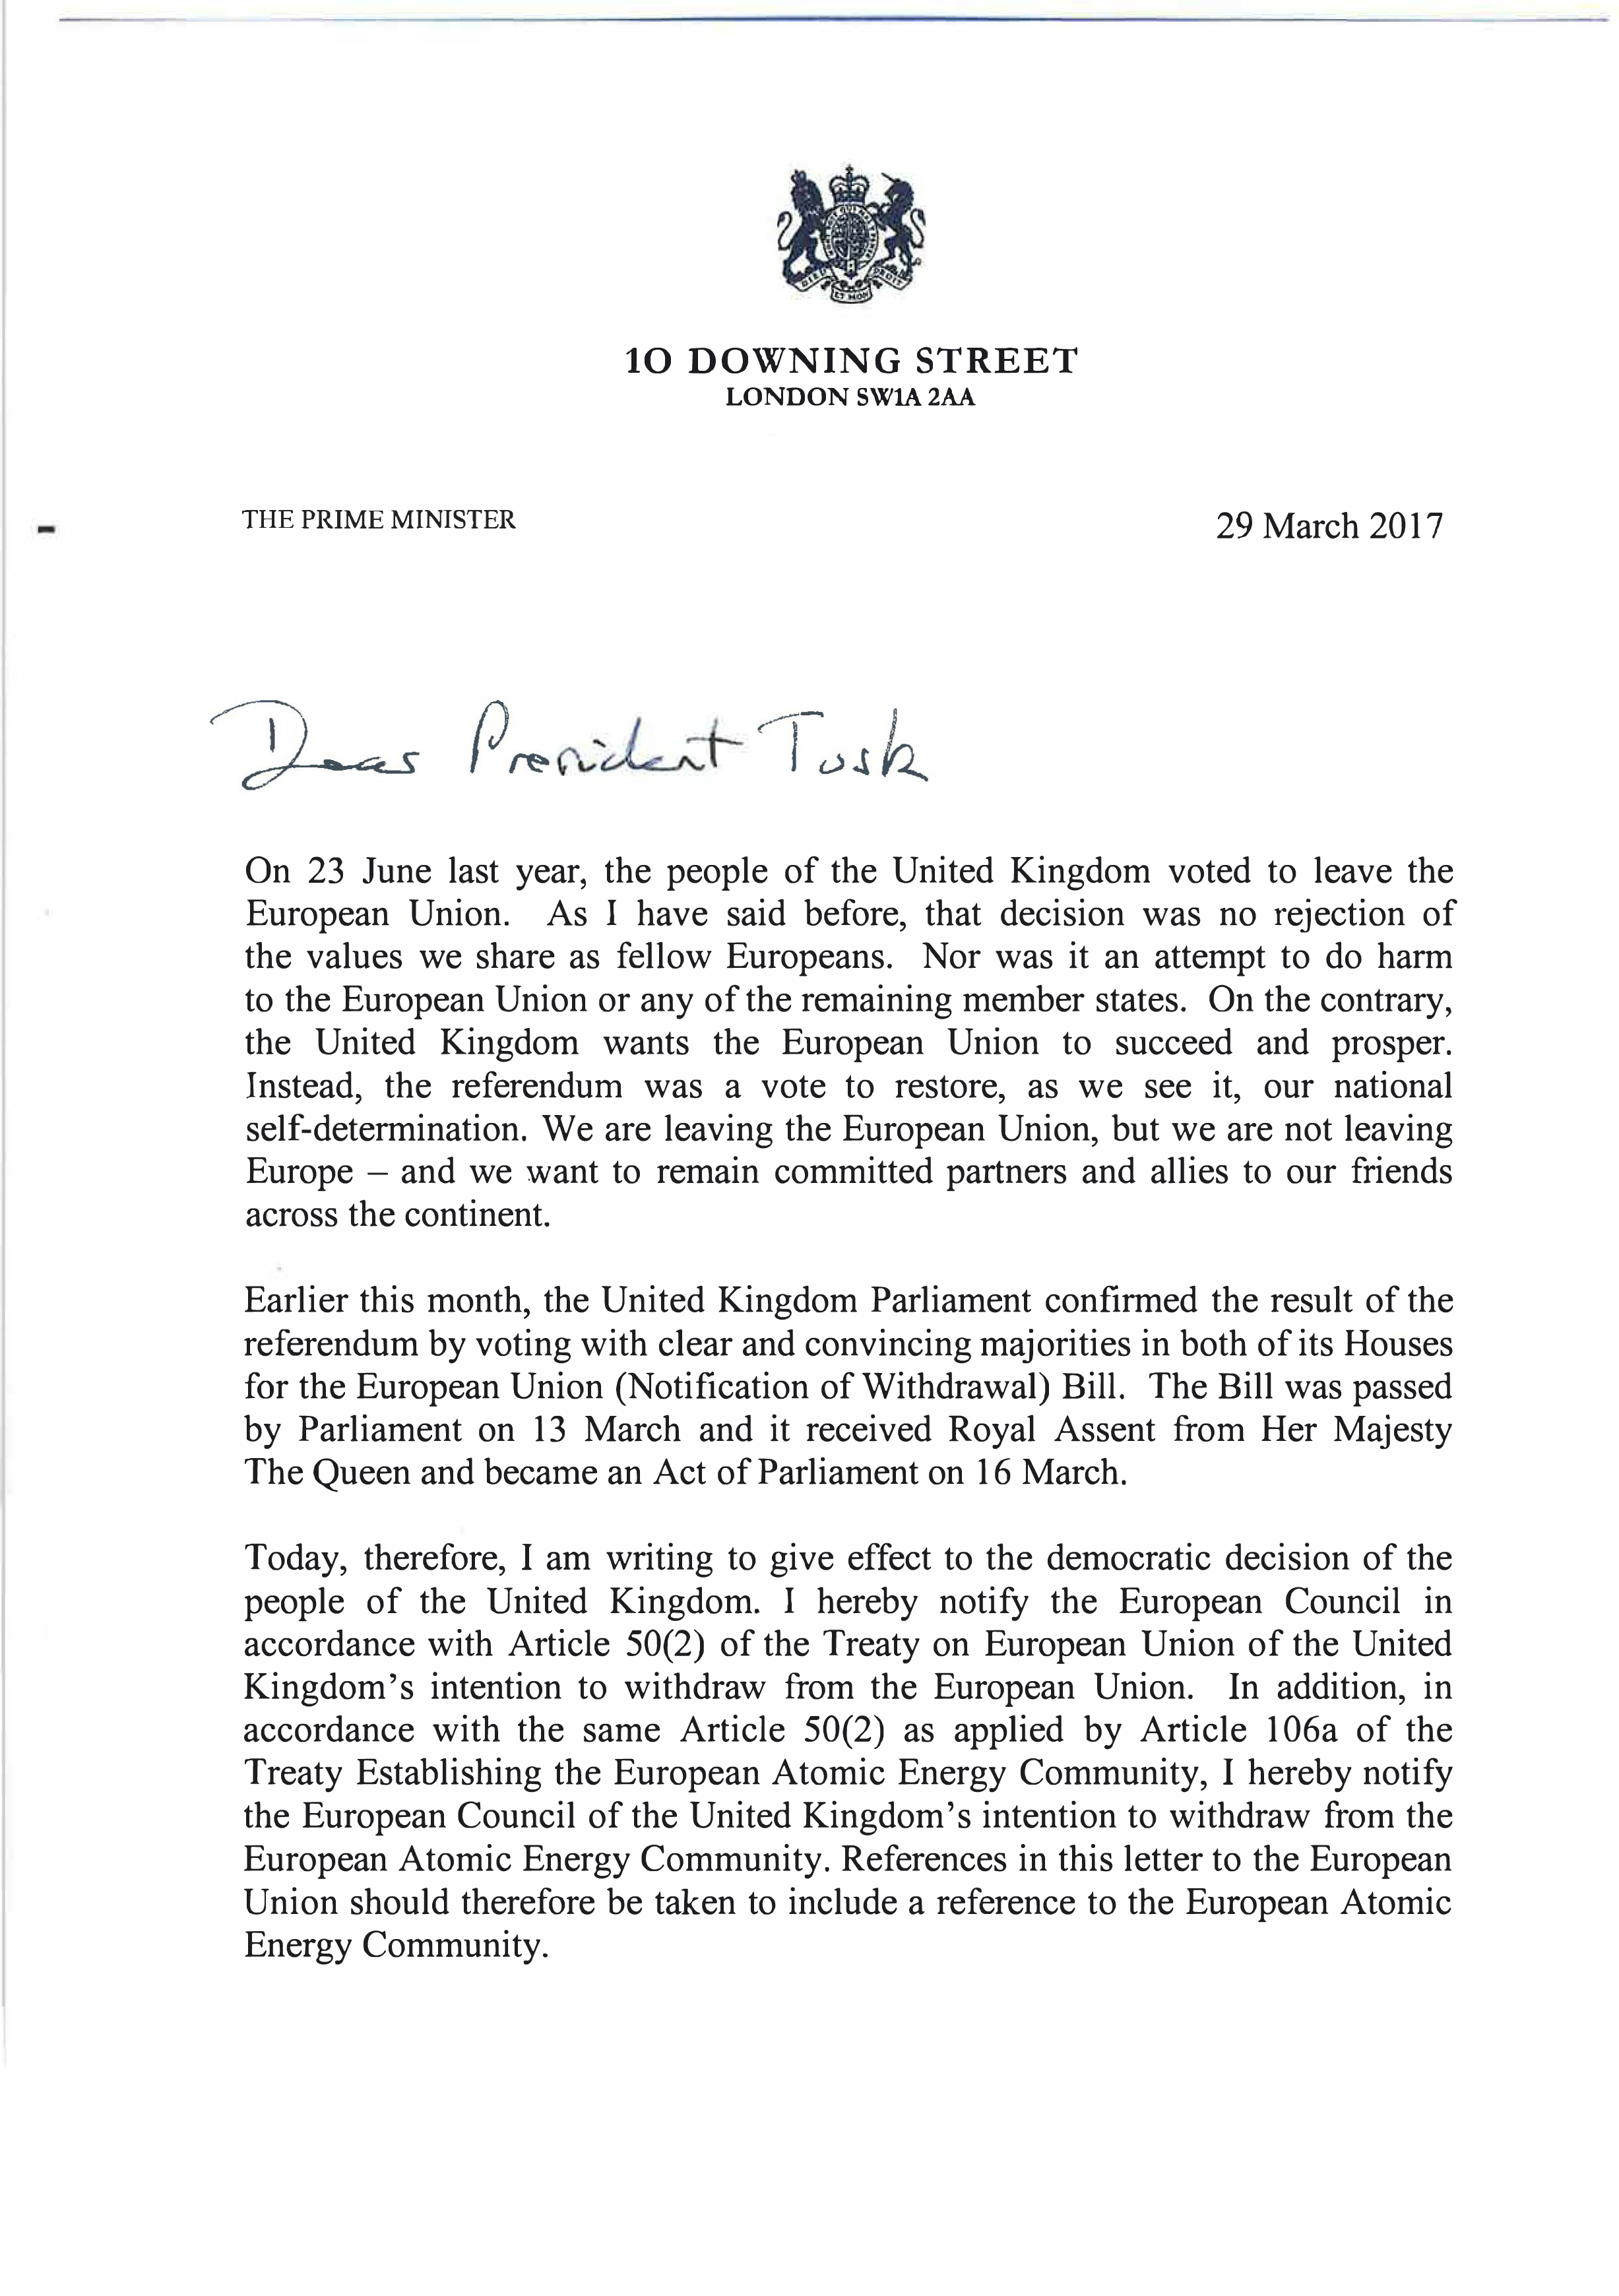 This is the text of the letter that Britain's Prime Minister Theresa May sent to EU Council President Donald Tusk, triggering Article 50 of the Lisbon Treaty on March 29, 2017. (10 Downing Street/ via AP)